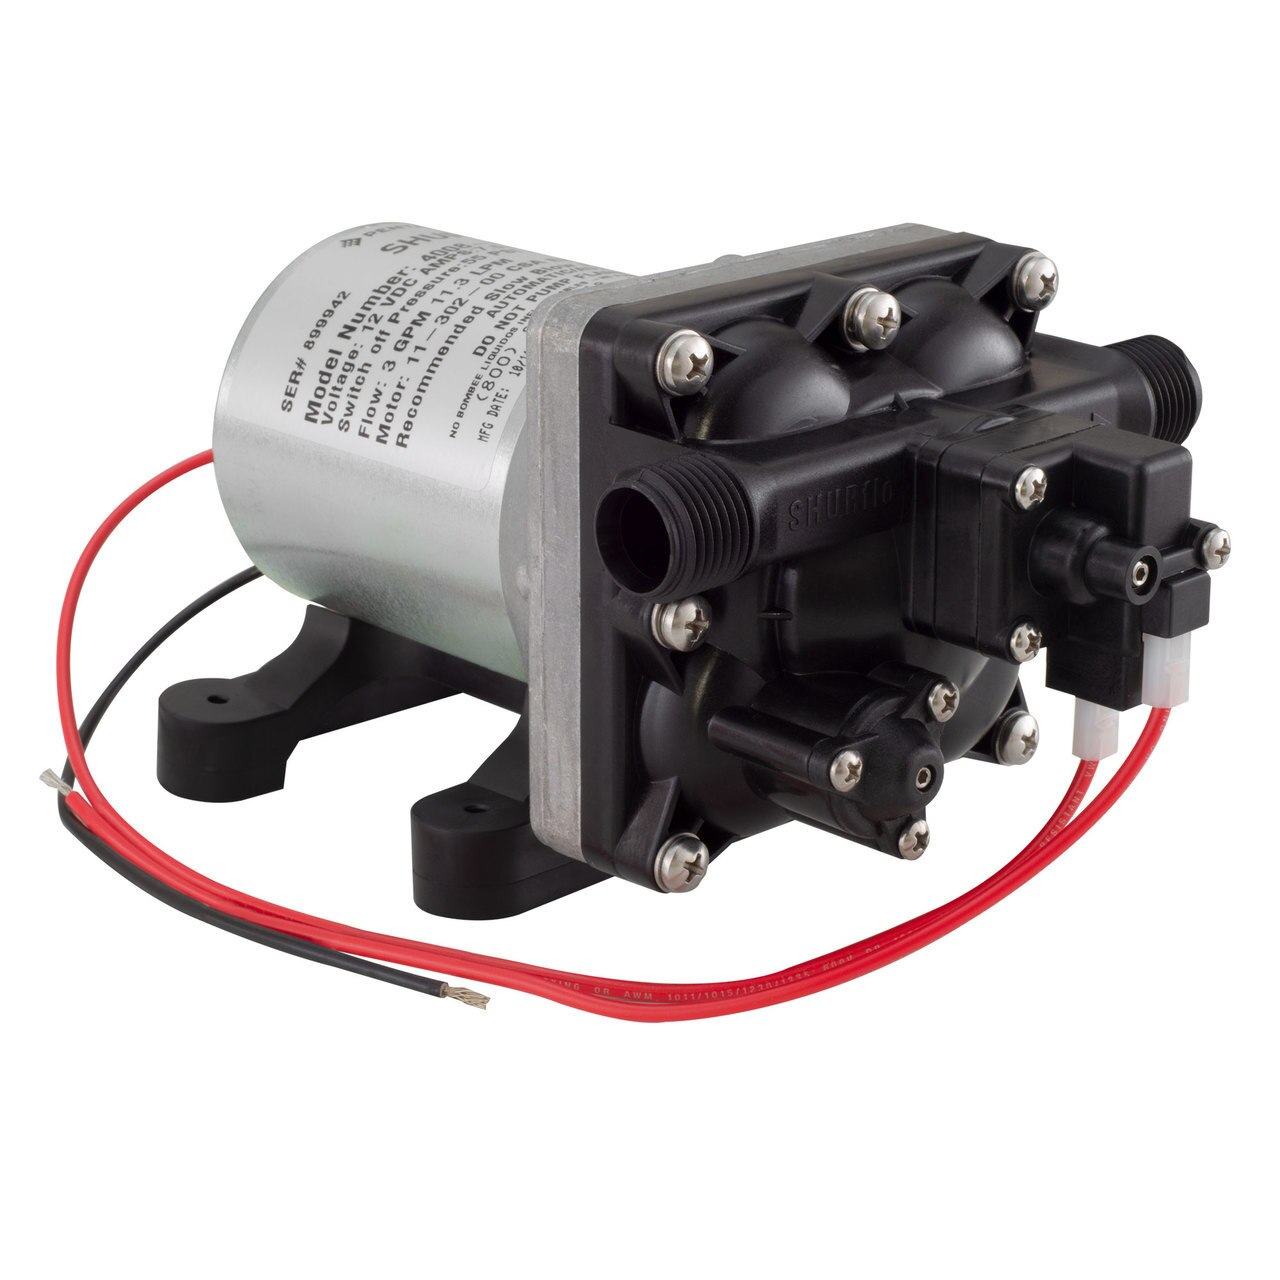 Boat Marine 12V Engine Oil Change Gear Pump 3.2 GPM Transfer Water Electric DC